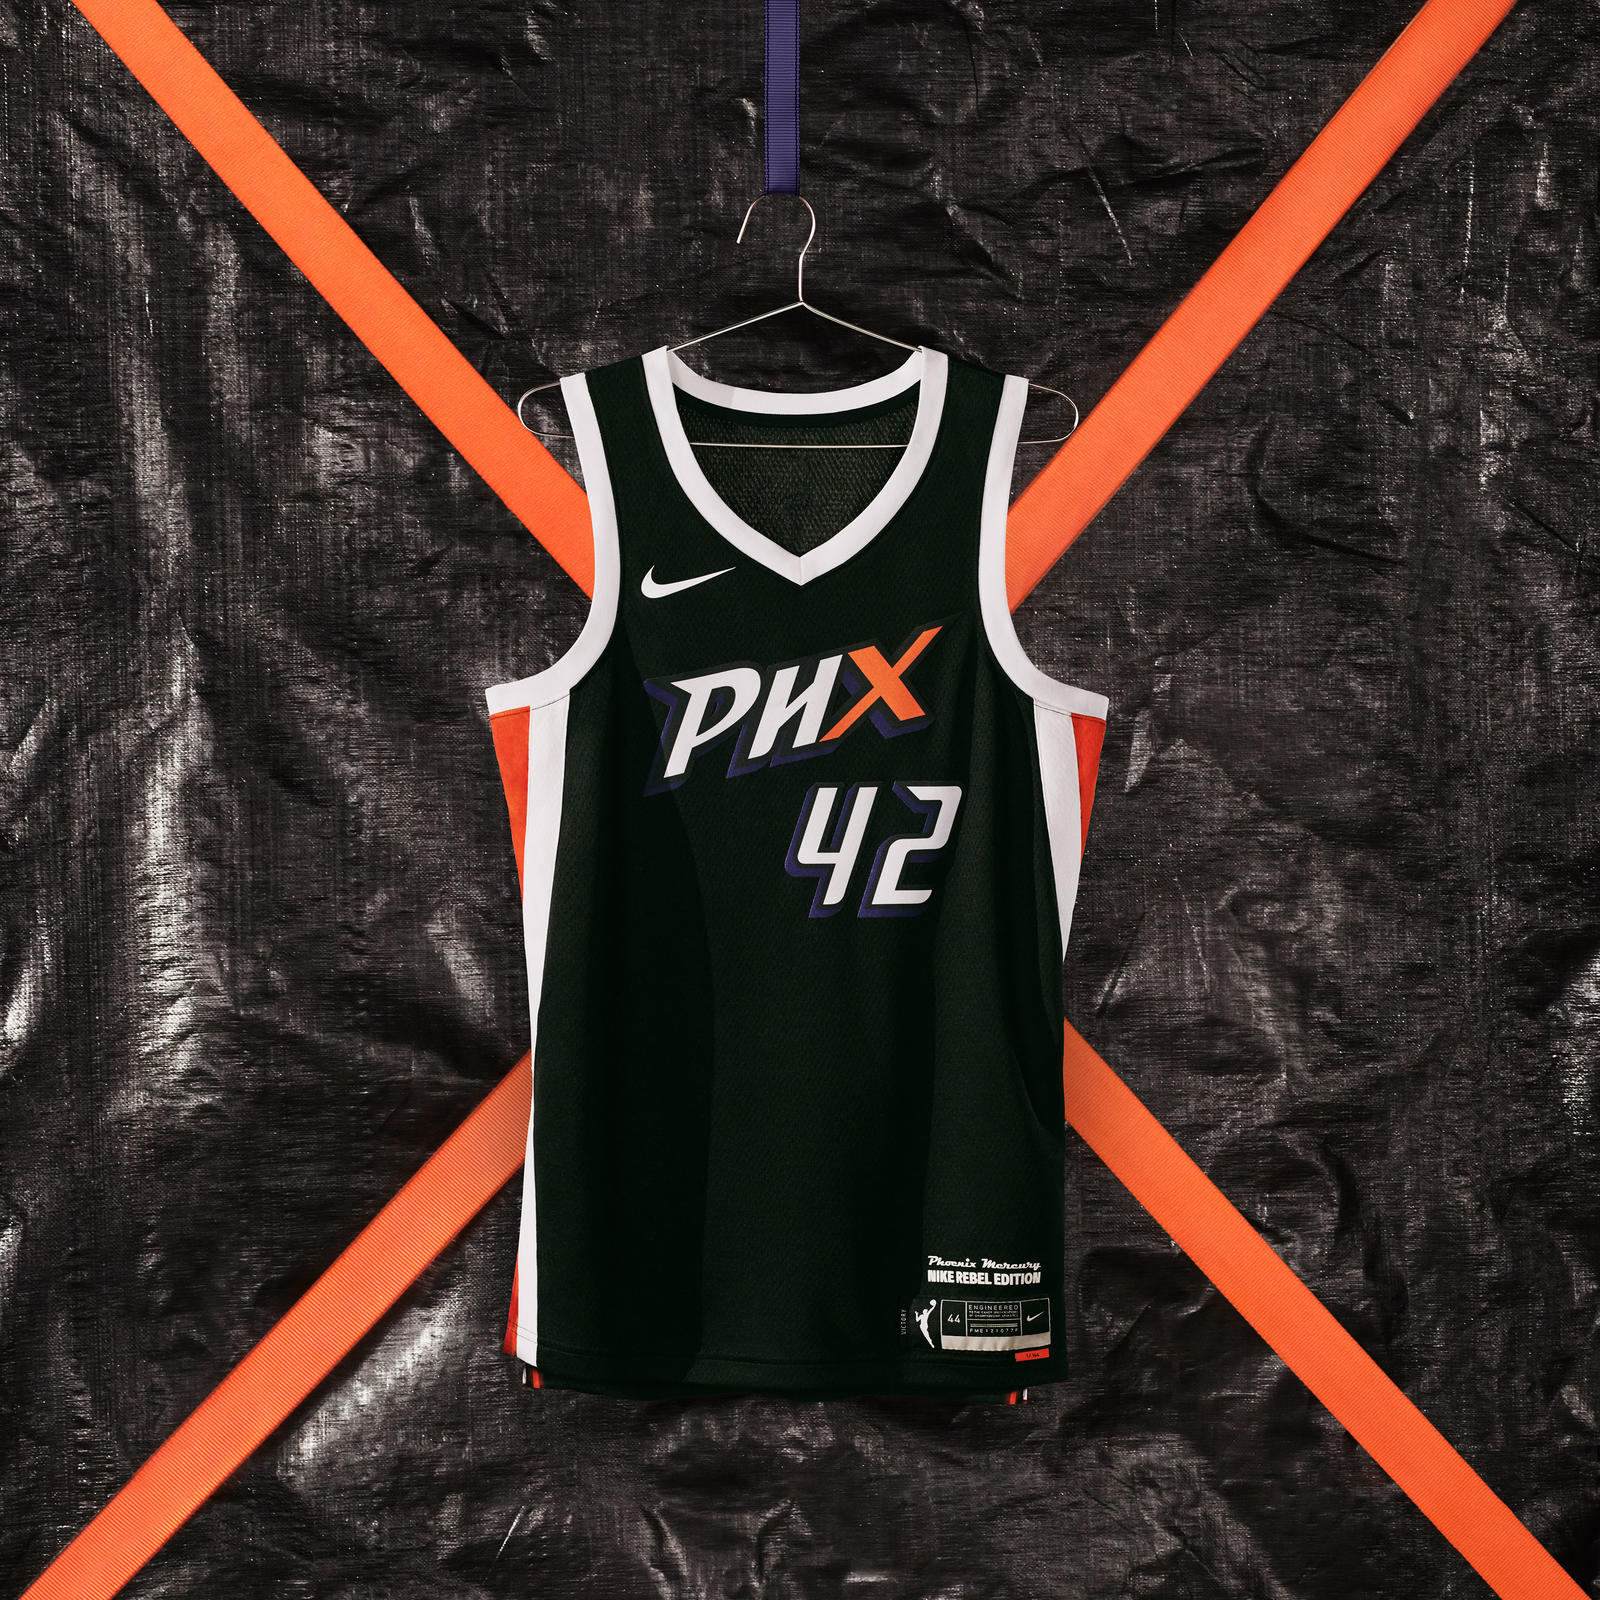 Nike WNBA 2021 Uniform Editions  23